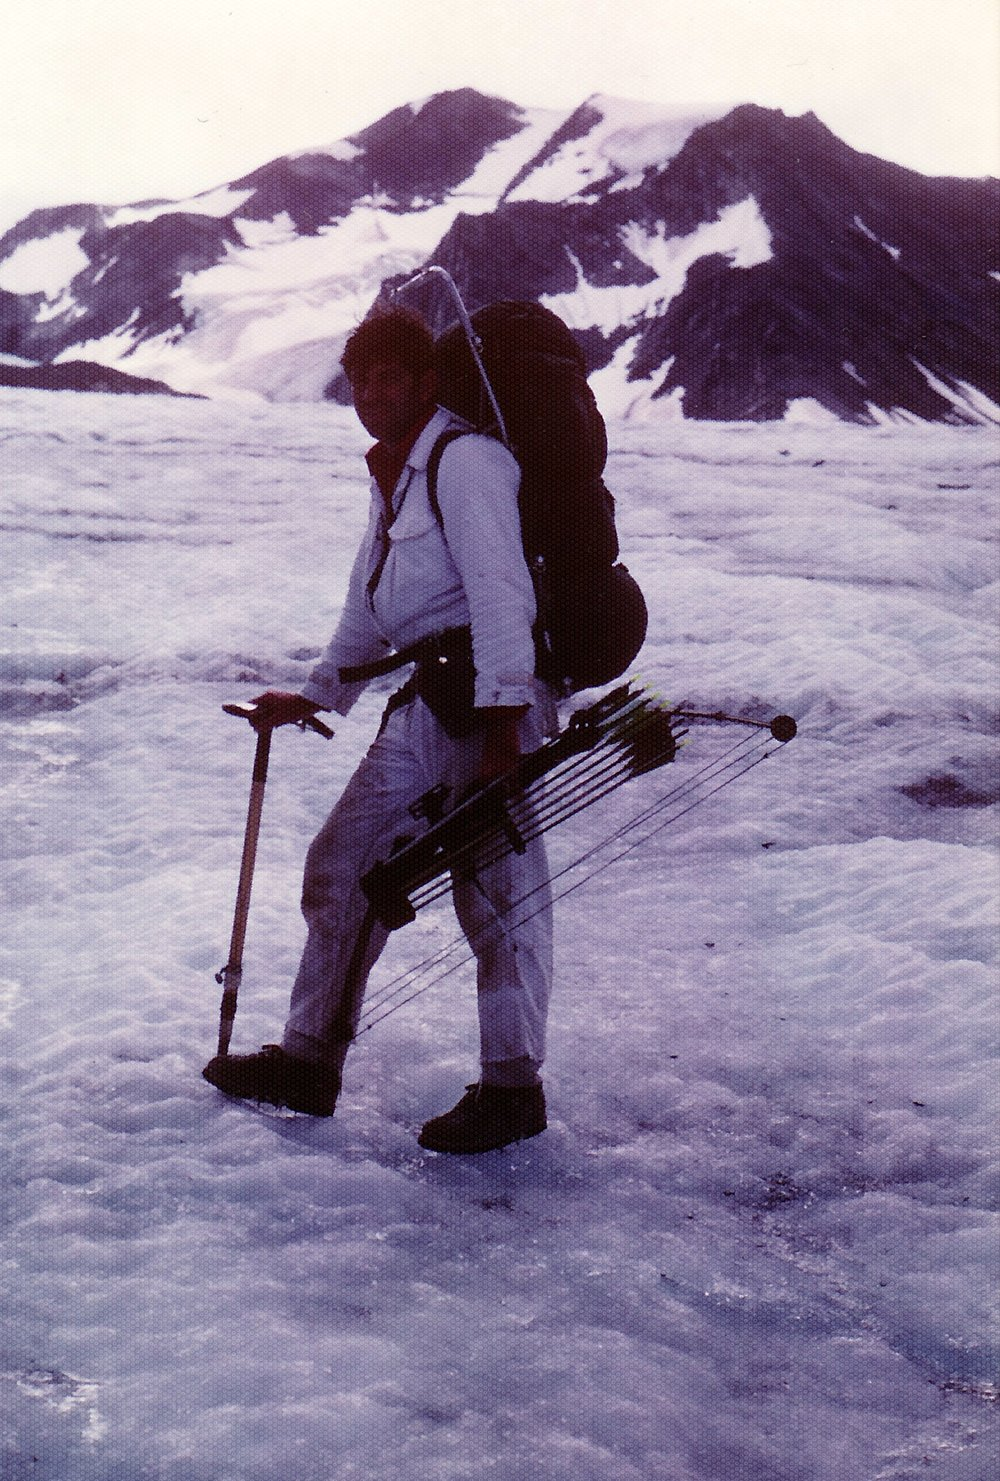 Me traveling on the glacier. If you look close you can see my instep ice cramp-on's.